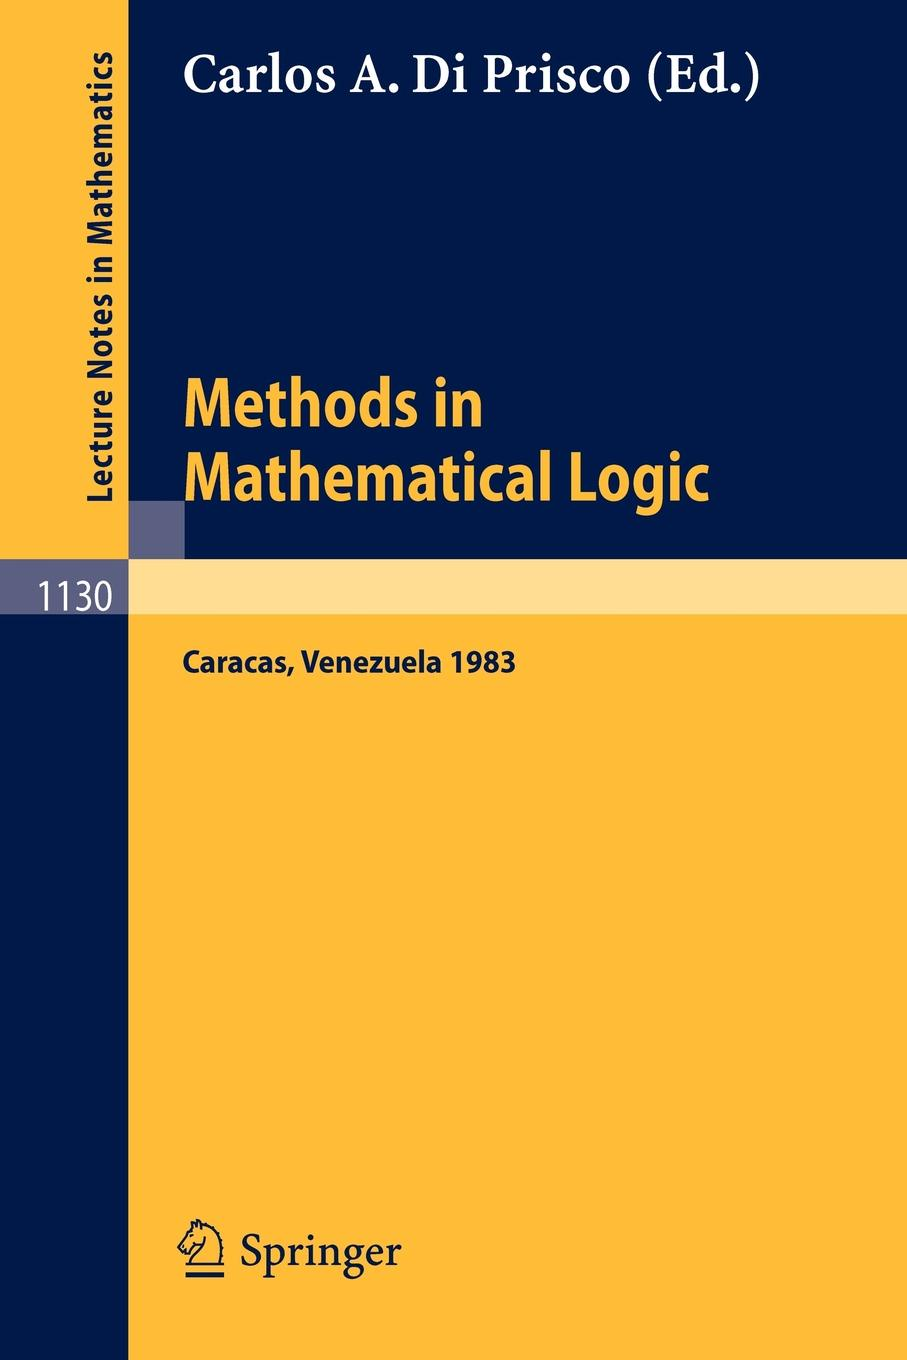 Methods in Mathematical Logic. Proceedings of the 6th Latin American Symposium on Mathematical Logic held in Caracas, Venezuela, Aug. 1-6, 1983